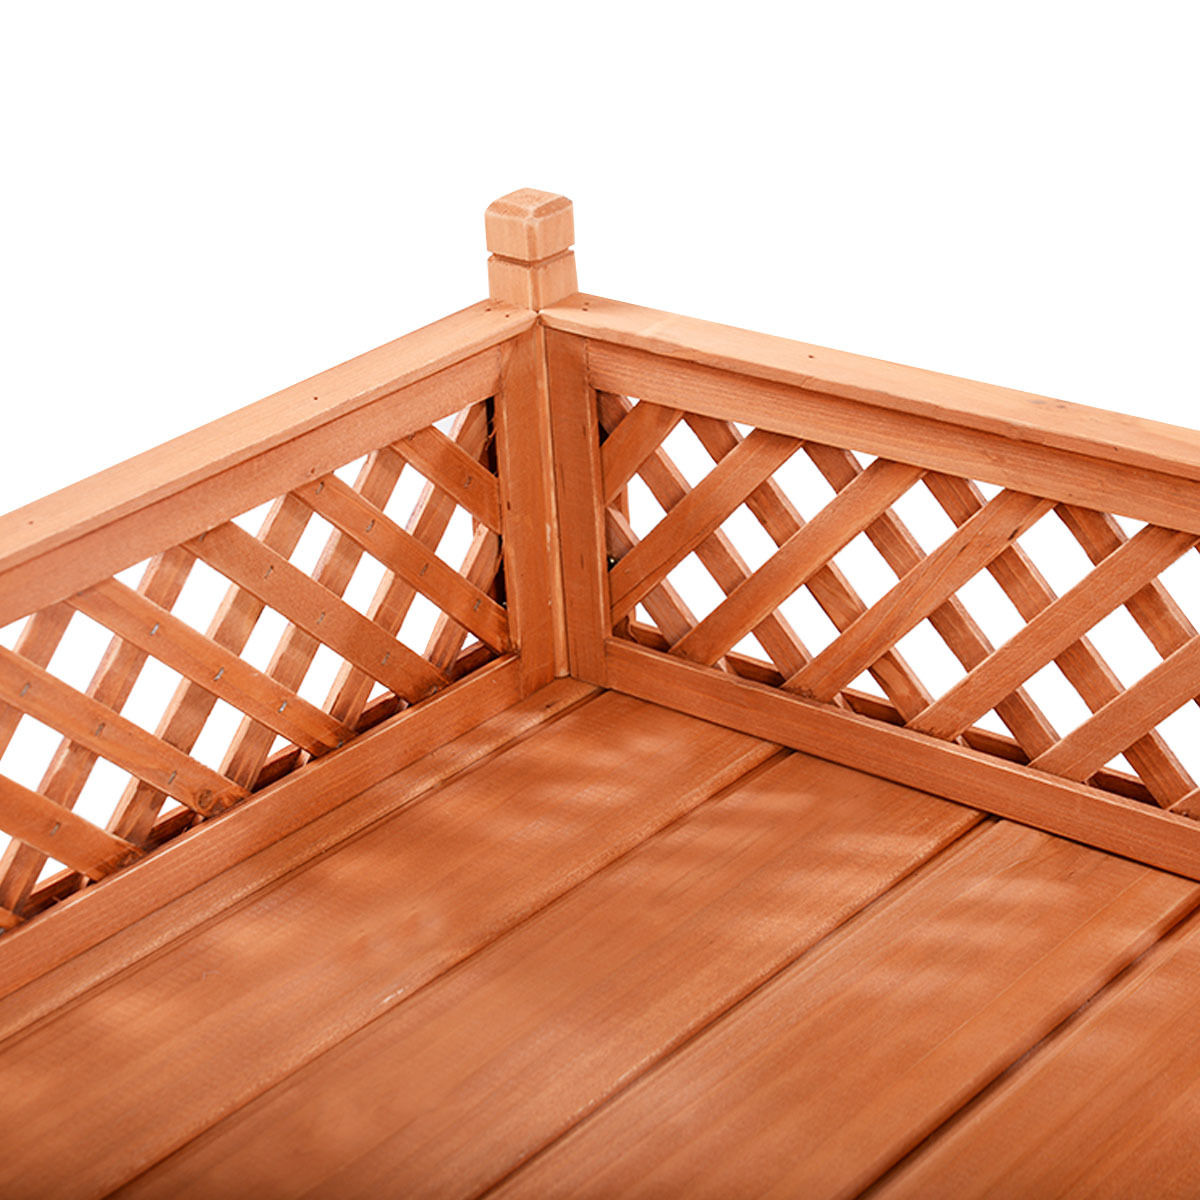 Roof balcony roof balcony exterior transitional with for Dog bed roof